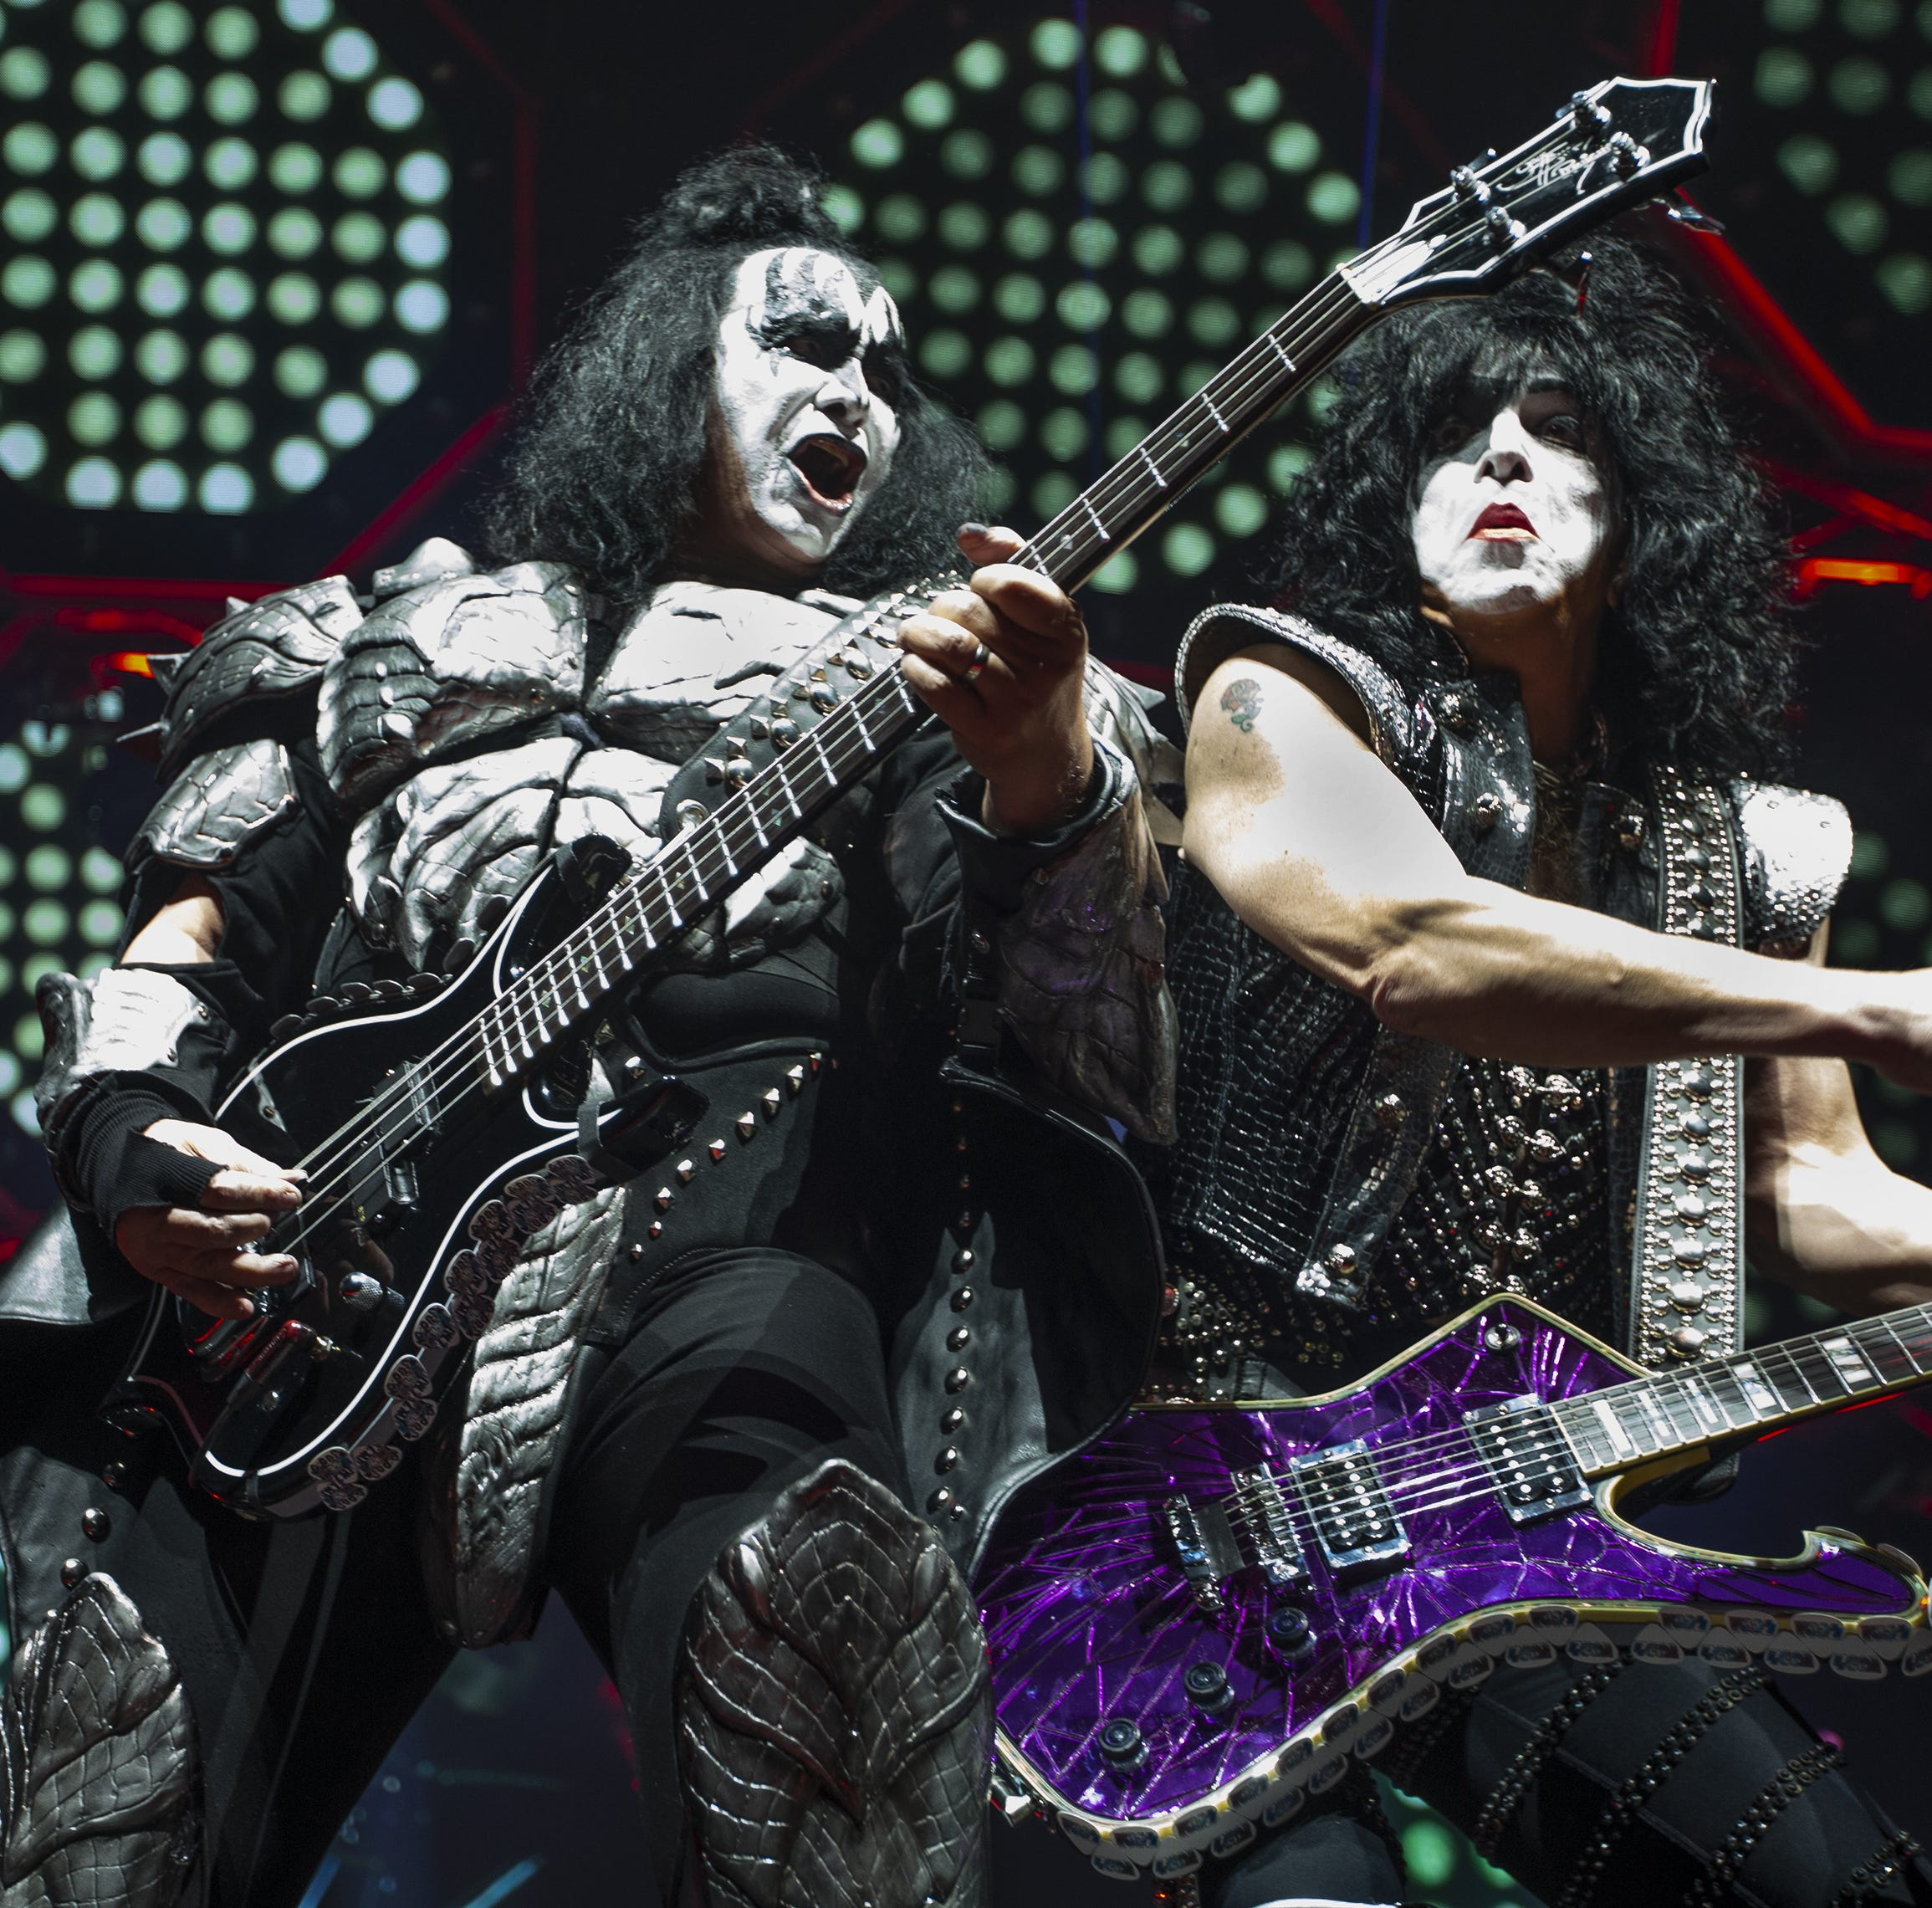 Kiss End of the Road Tour: They're going out with a bang